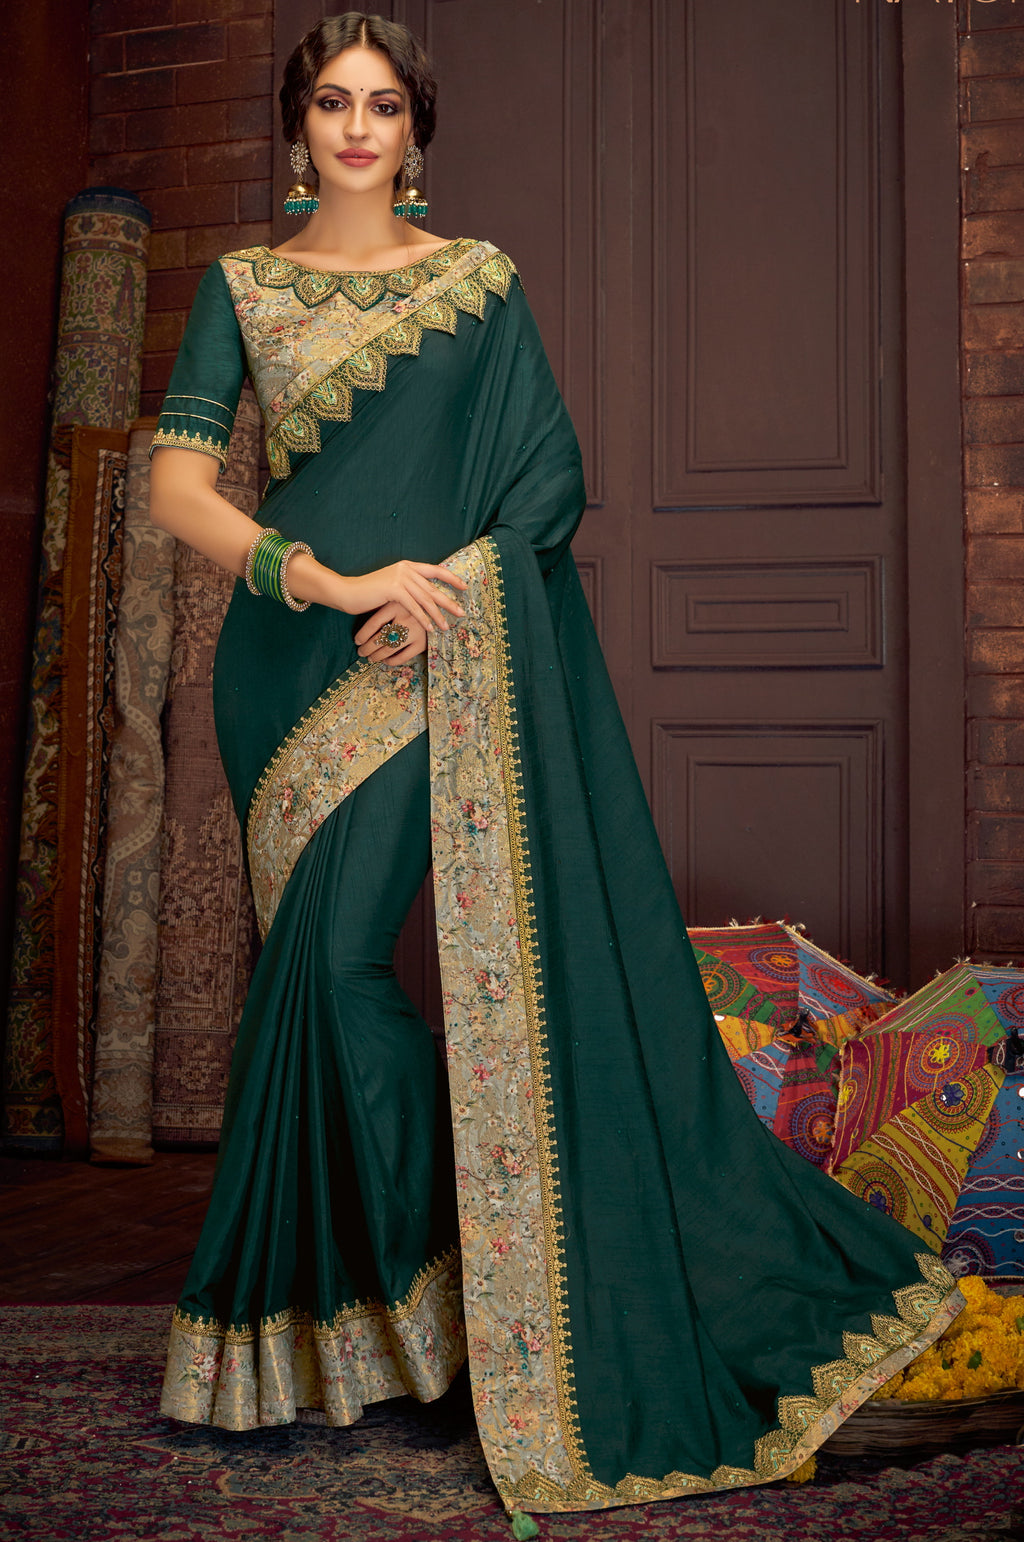 Green Color Satin Silk Splendid Festive Sarees NYF-5215